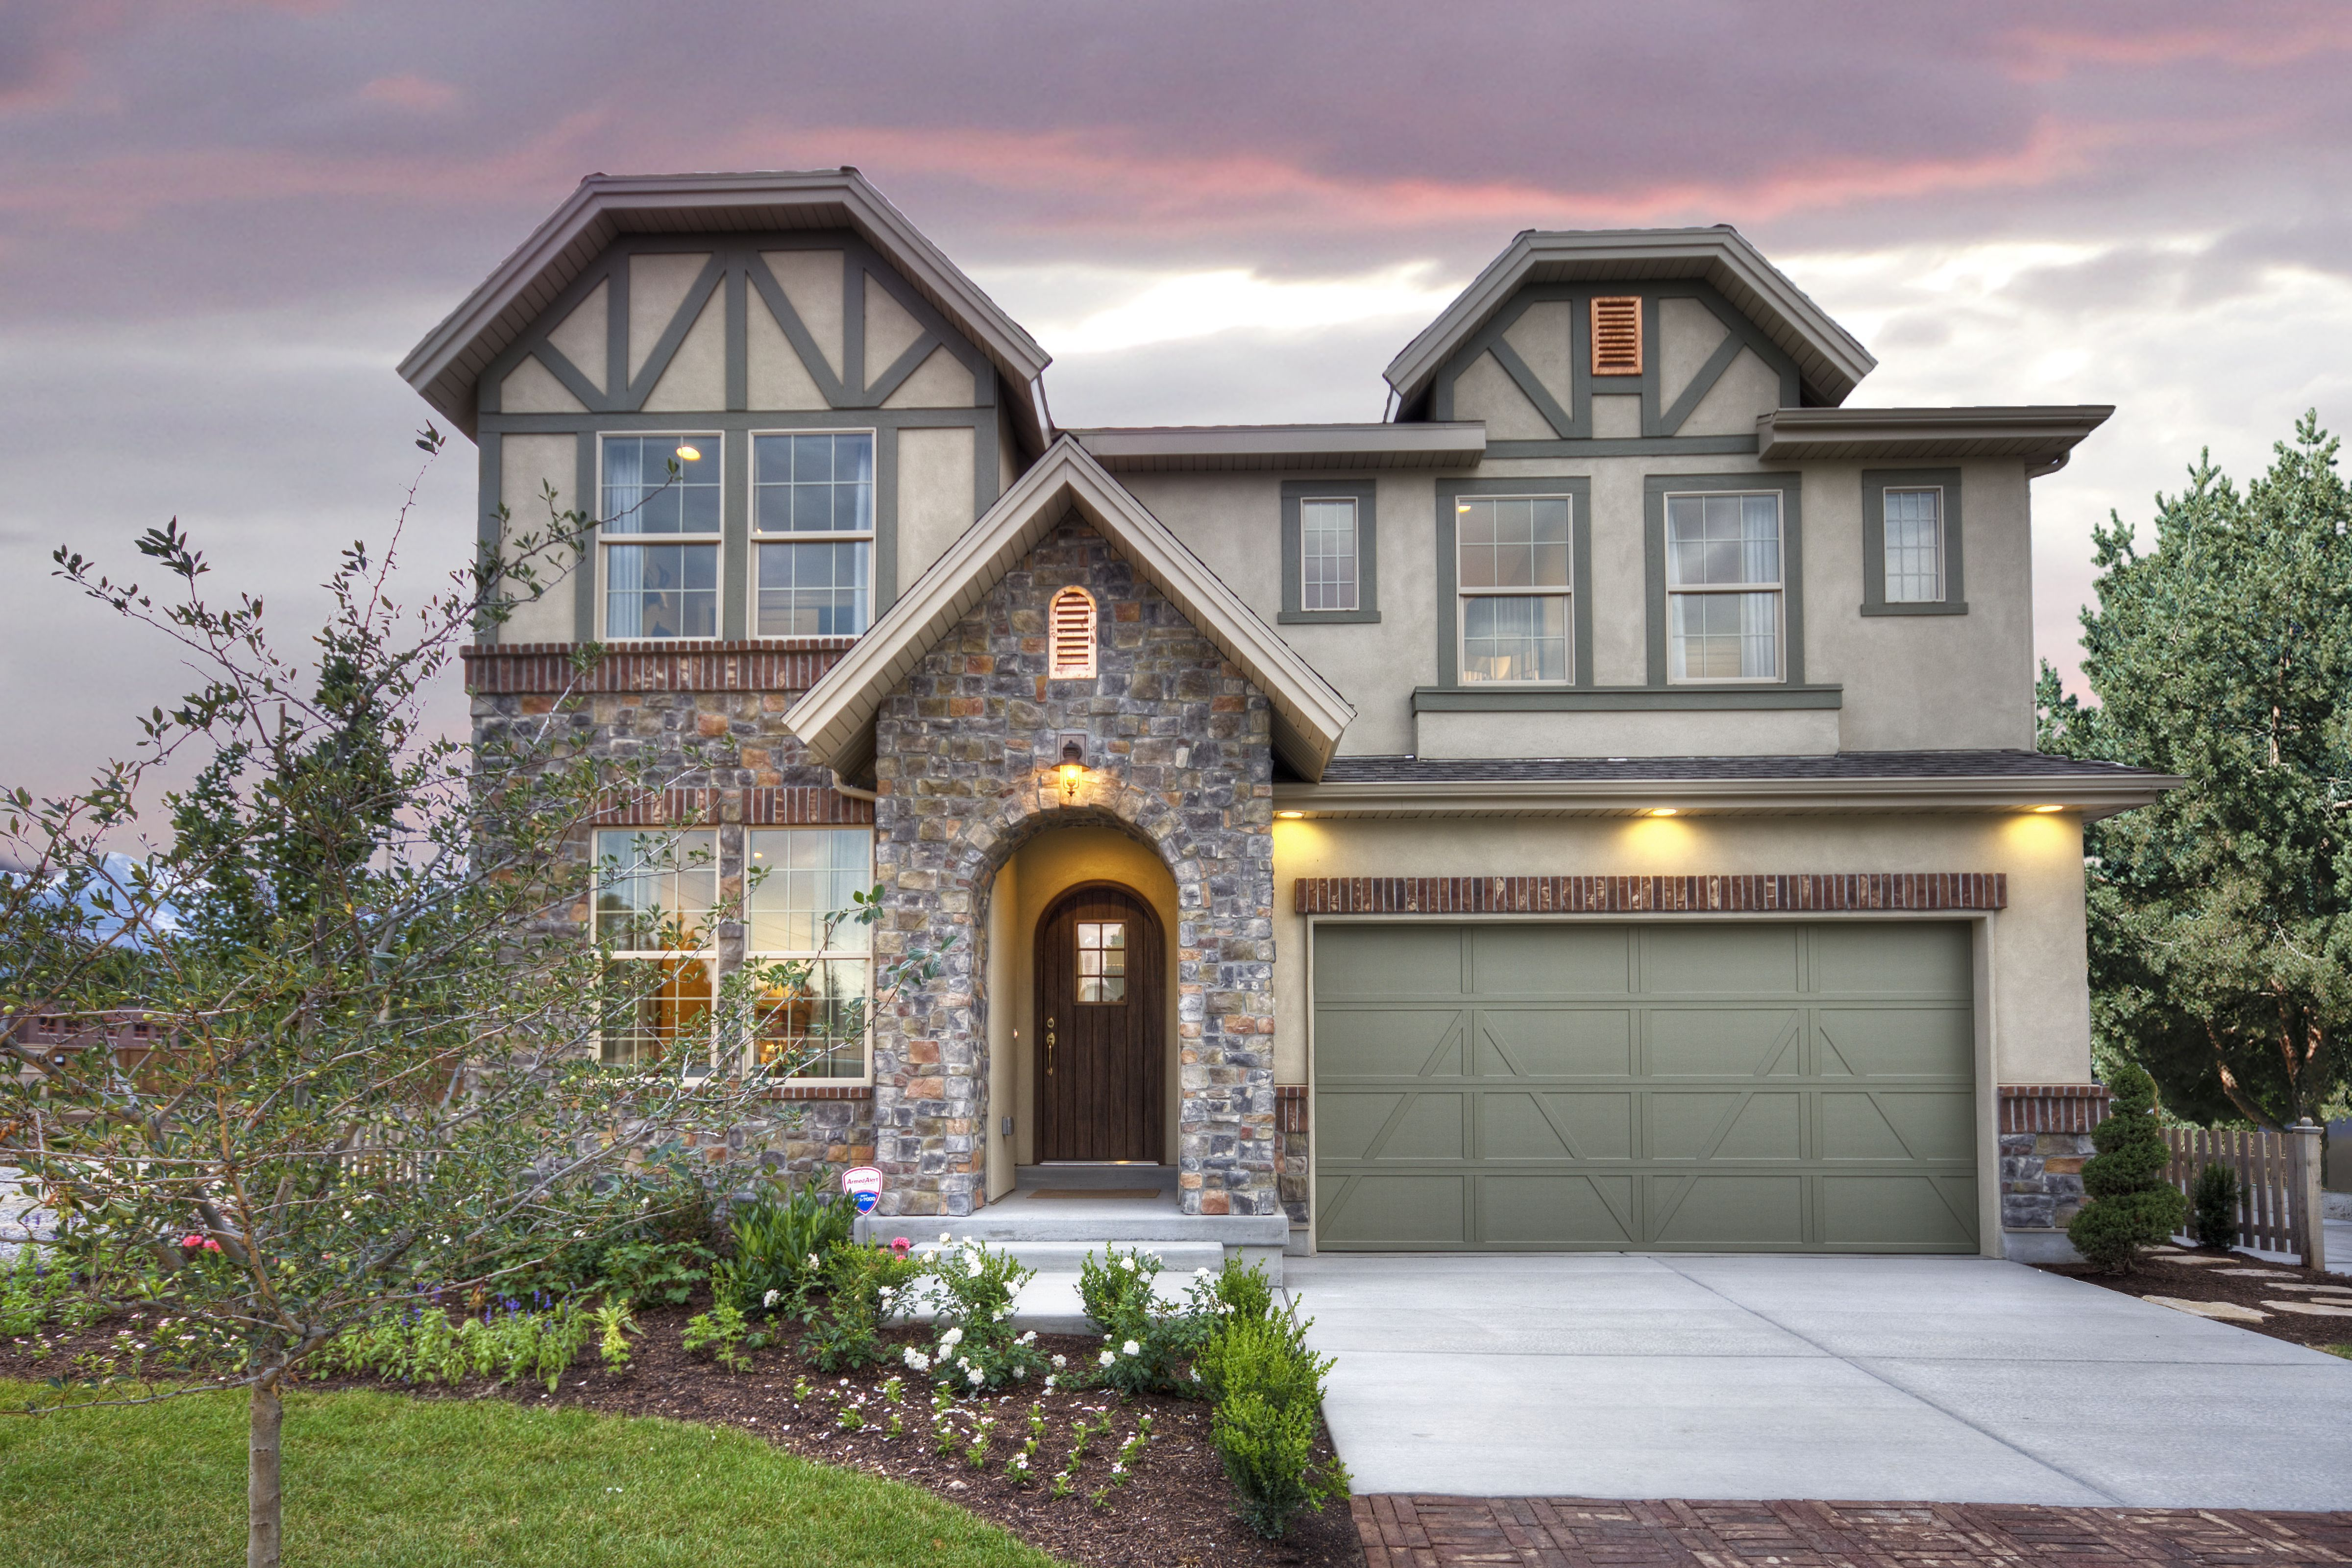 Custom Home Designs By Wind River Homes New Home Design Centers